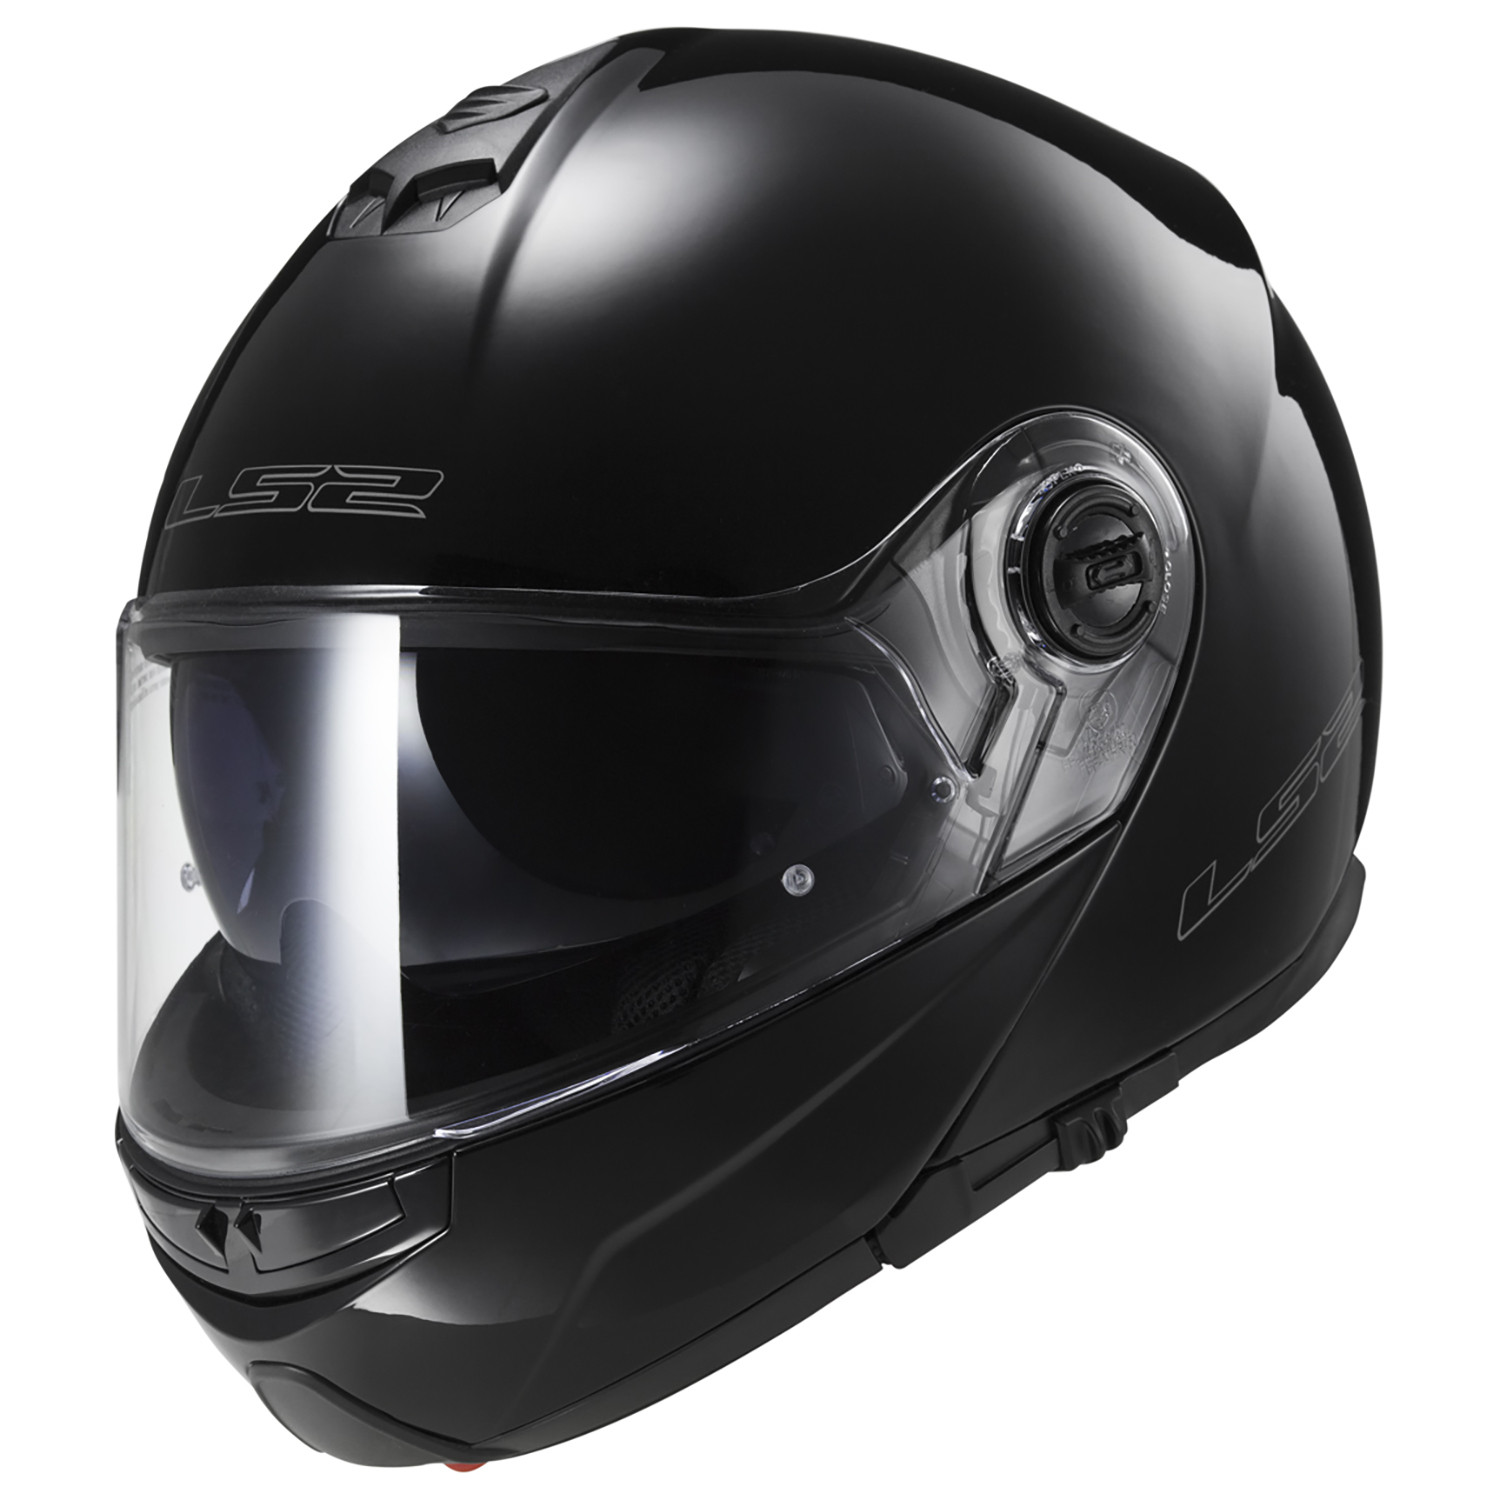 Casco Rebatible LS2 FF 325 Strobe Negro Brillo